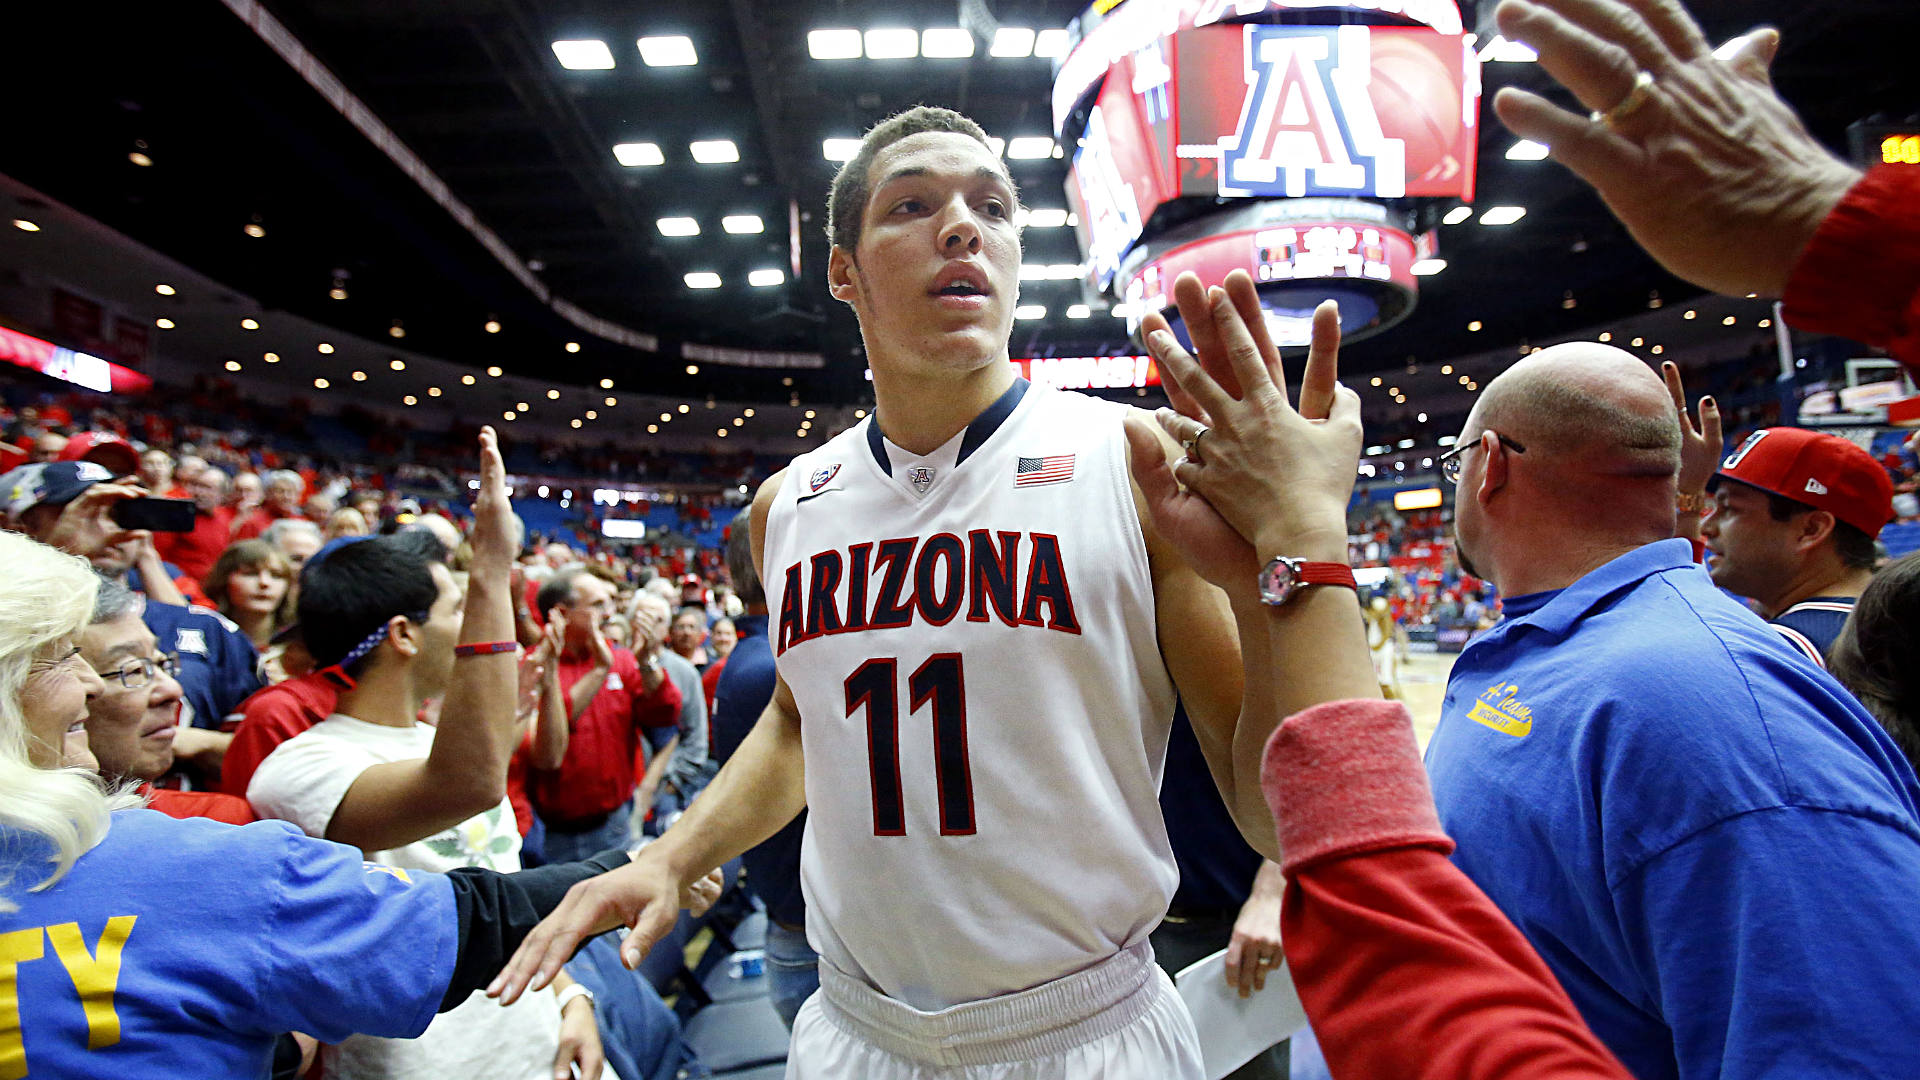 low priced b48da 67d4a Arizona announces Aaron Gordon, Nick Johnson entry to 2014 ...